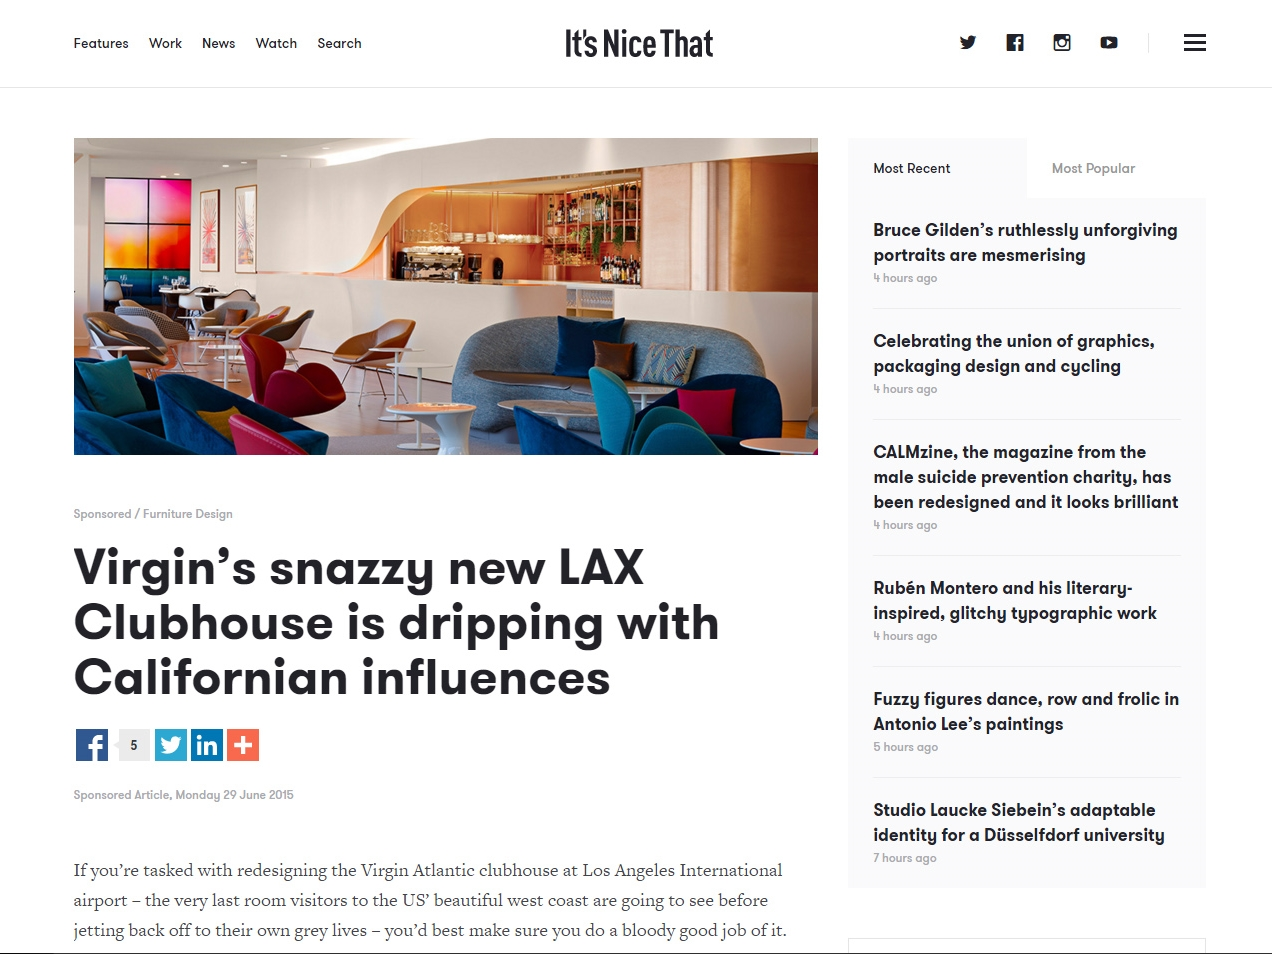 "It's Nice That  ""Virgin's Snazzy New Clubhouse is Dripping with Californian Influences"" June 29, 2015"